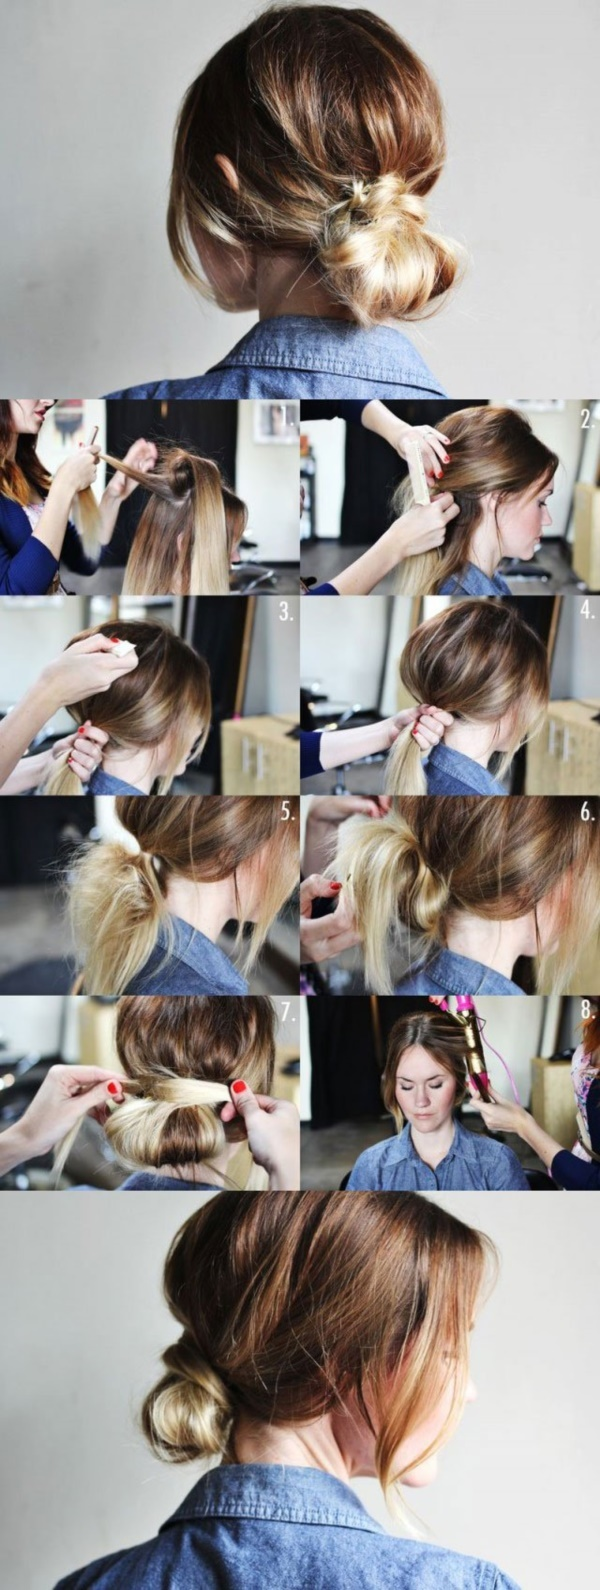 Strange 101 Easy Diy Hairstyles For Medium And Long Hair To Snatch Attention Hairstyles For Men Maxibearus